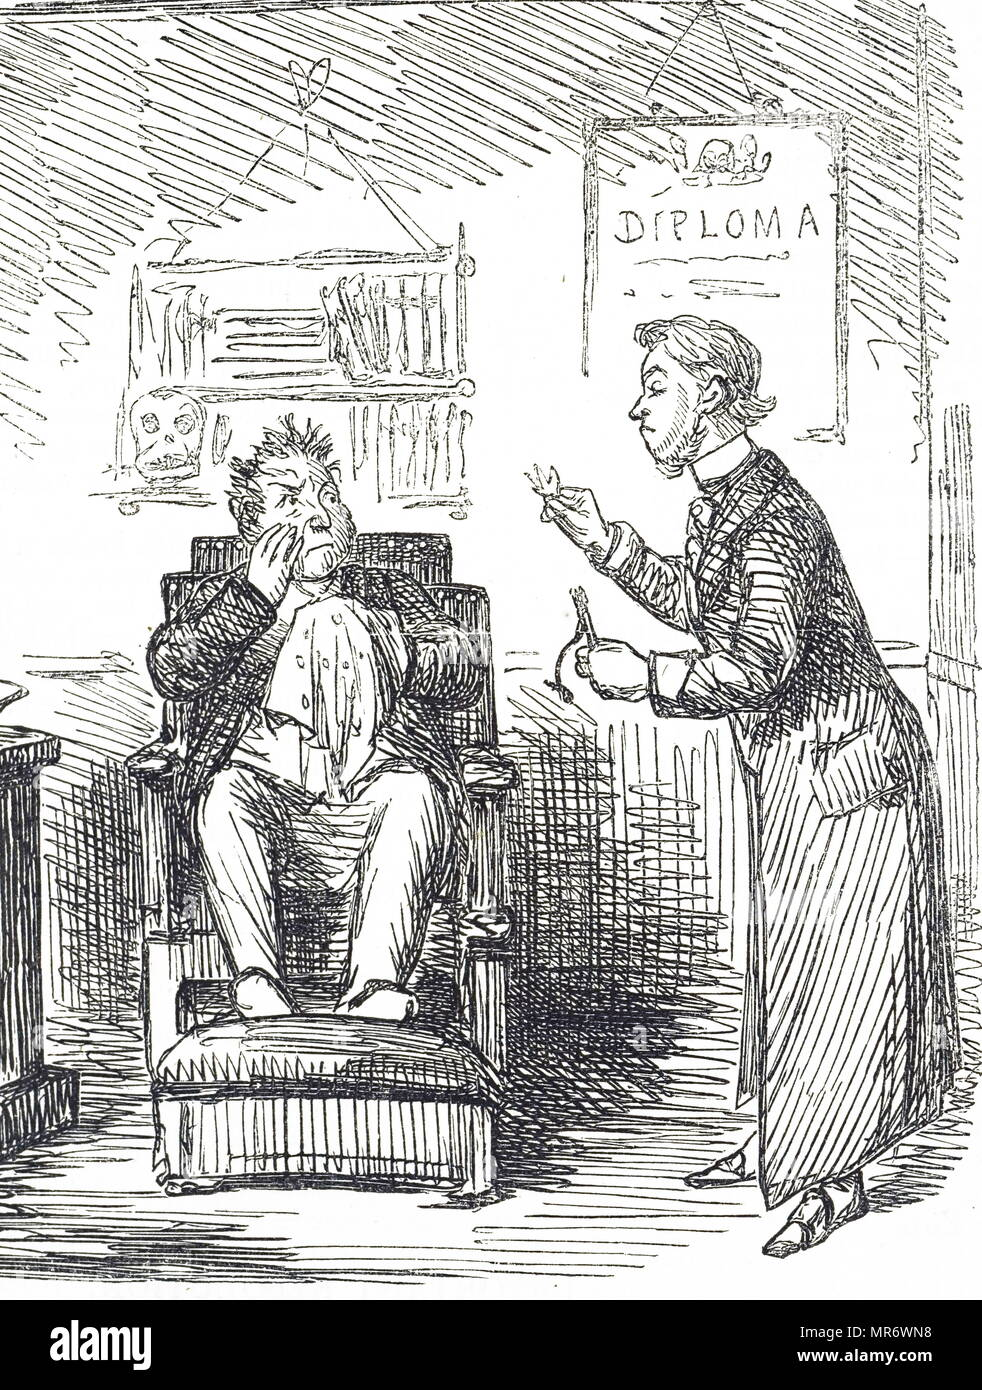 Cartoon depicting a man having his teeth removed by his dentist. Dated 19th century - Stock Image